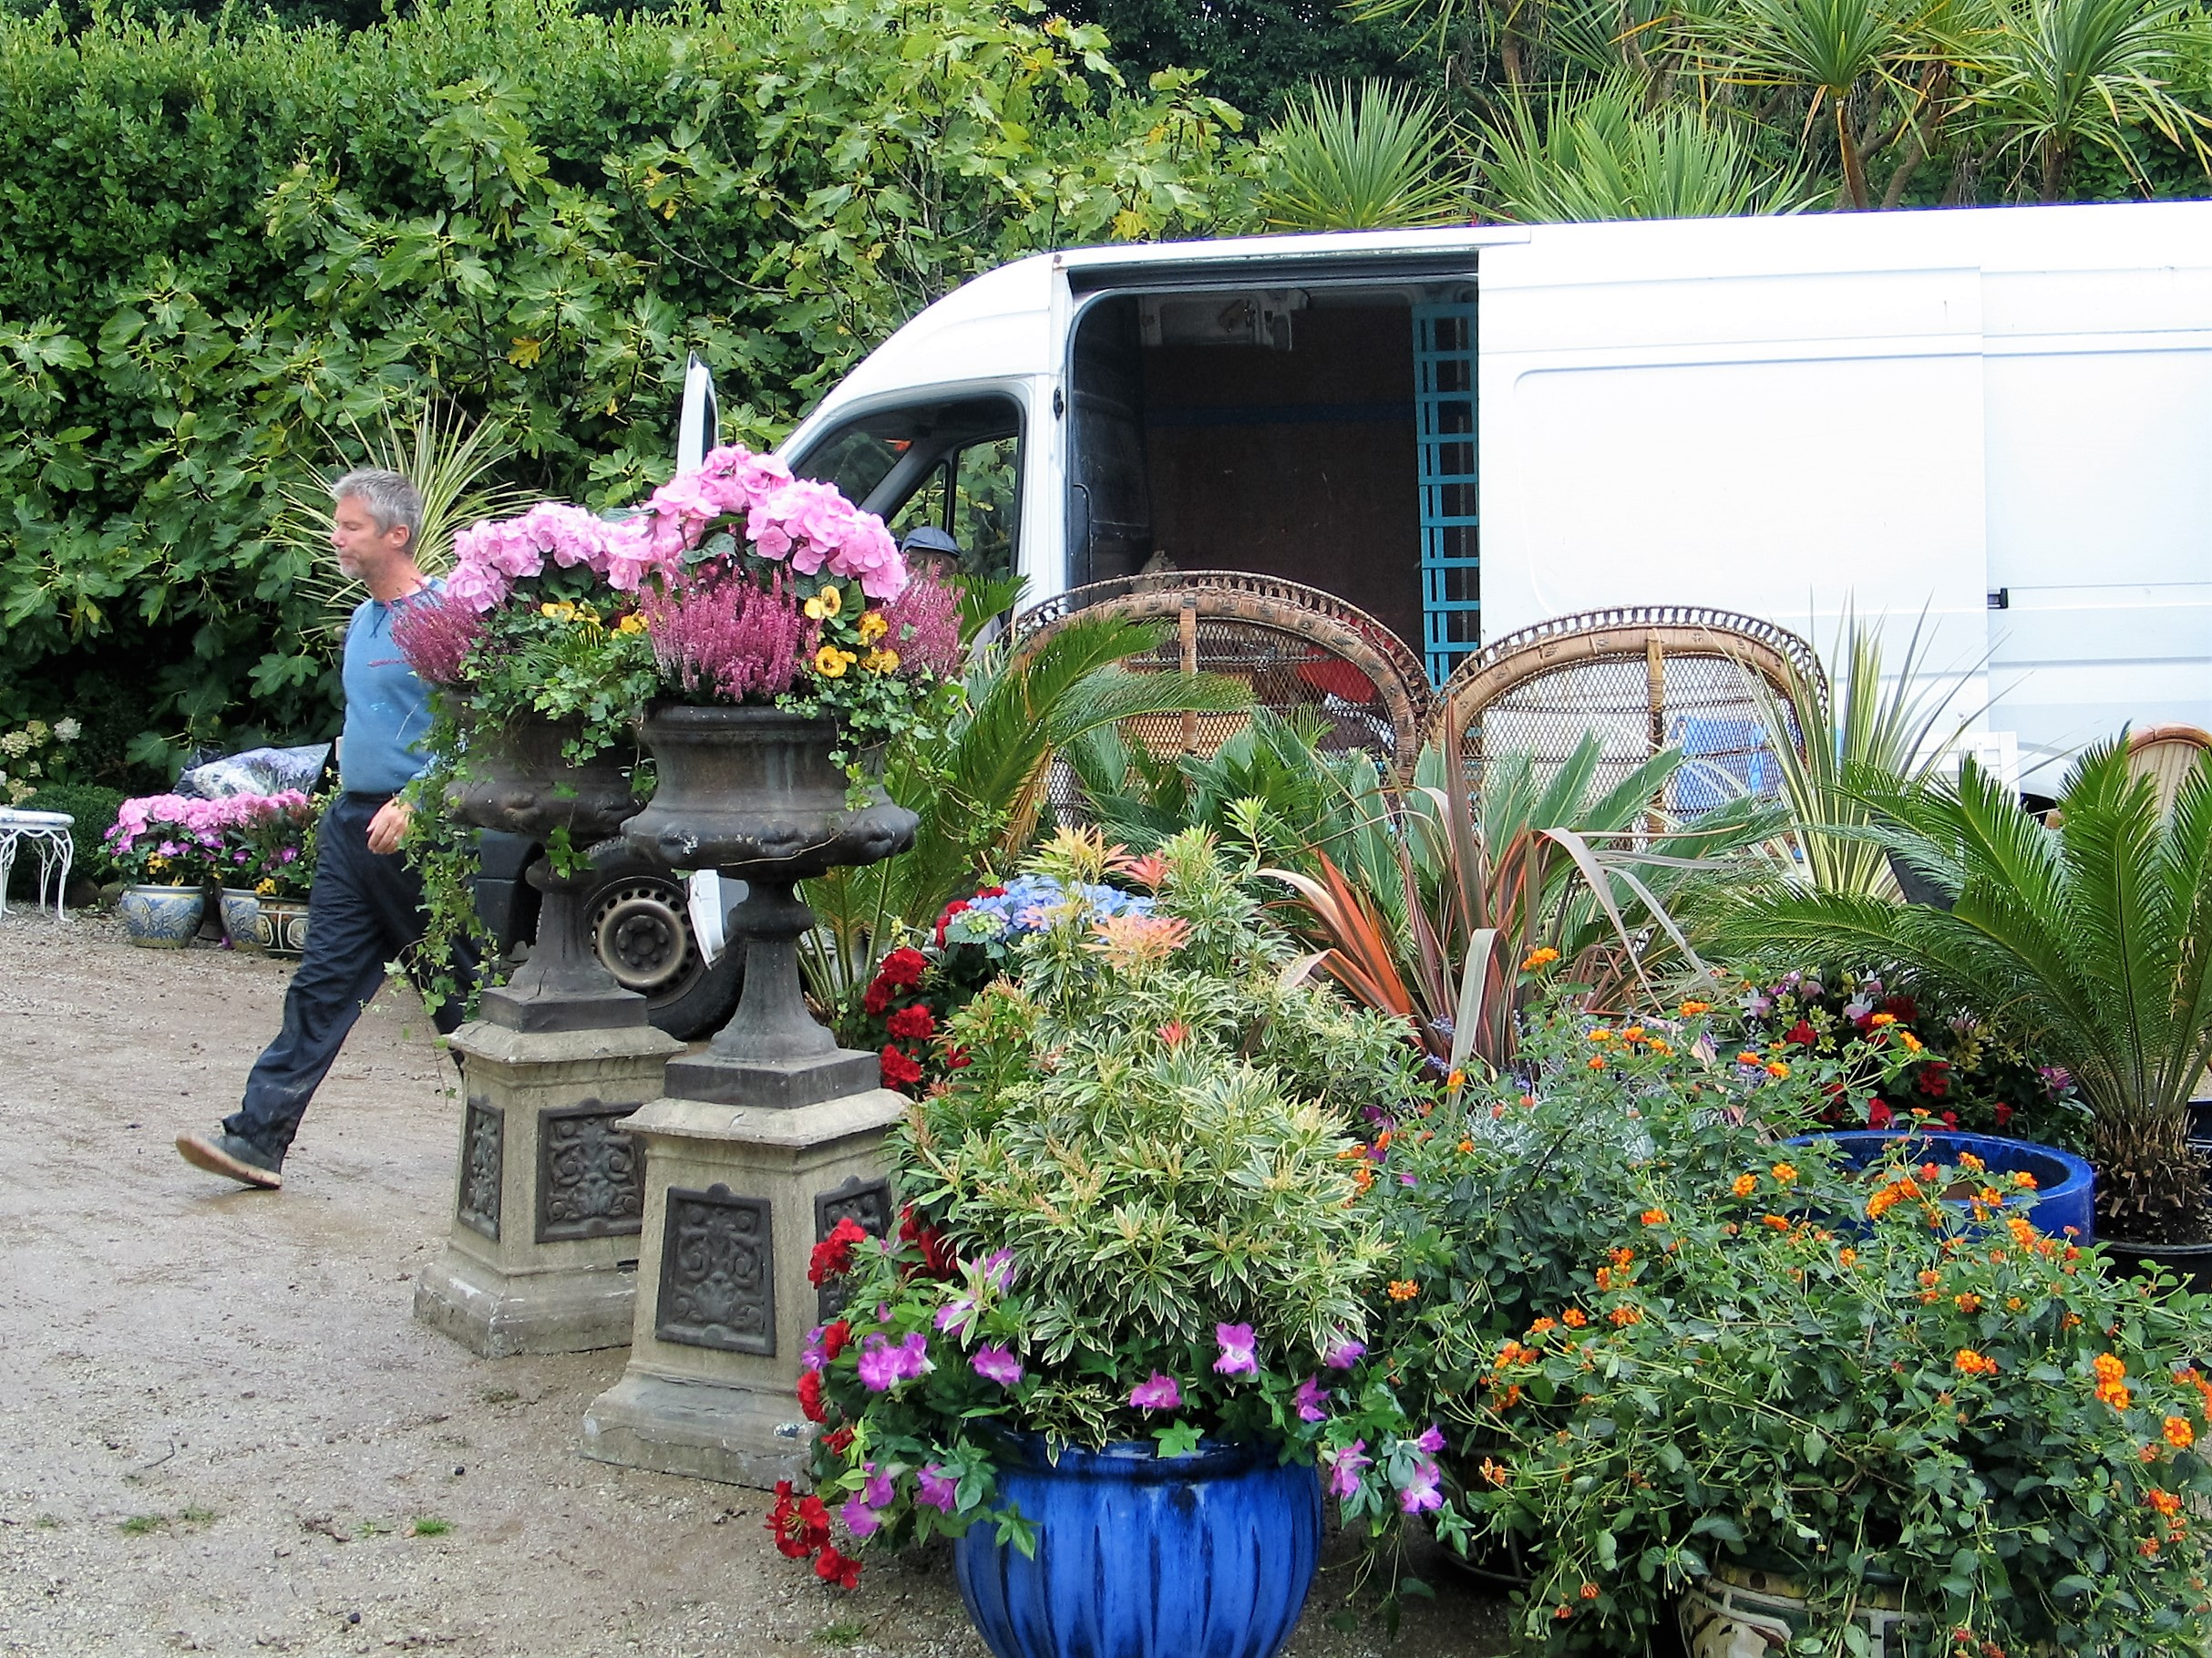 a fascinating array of plants and object began to be unloaded